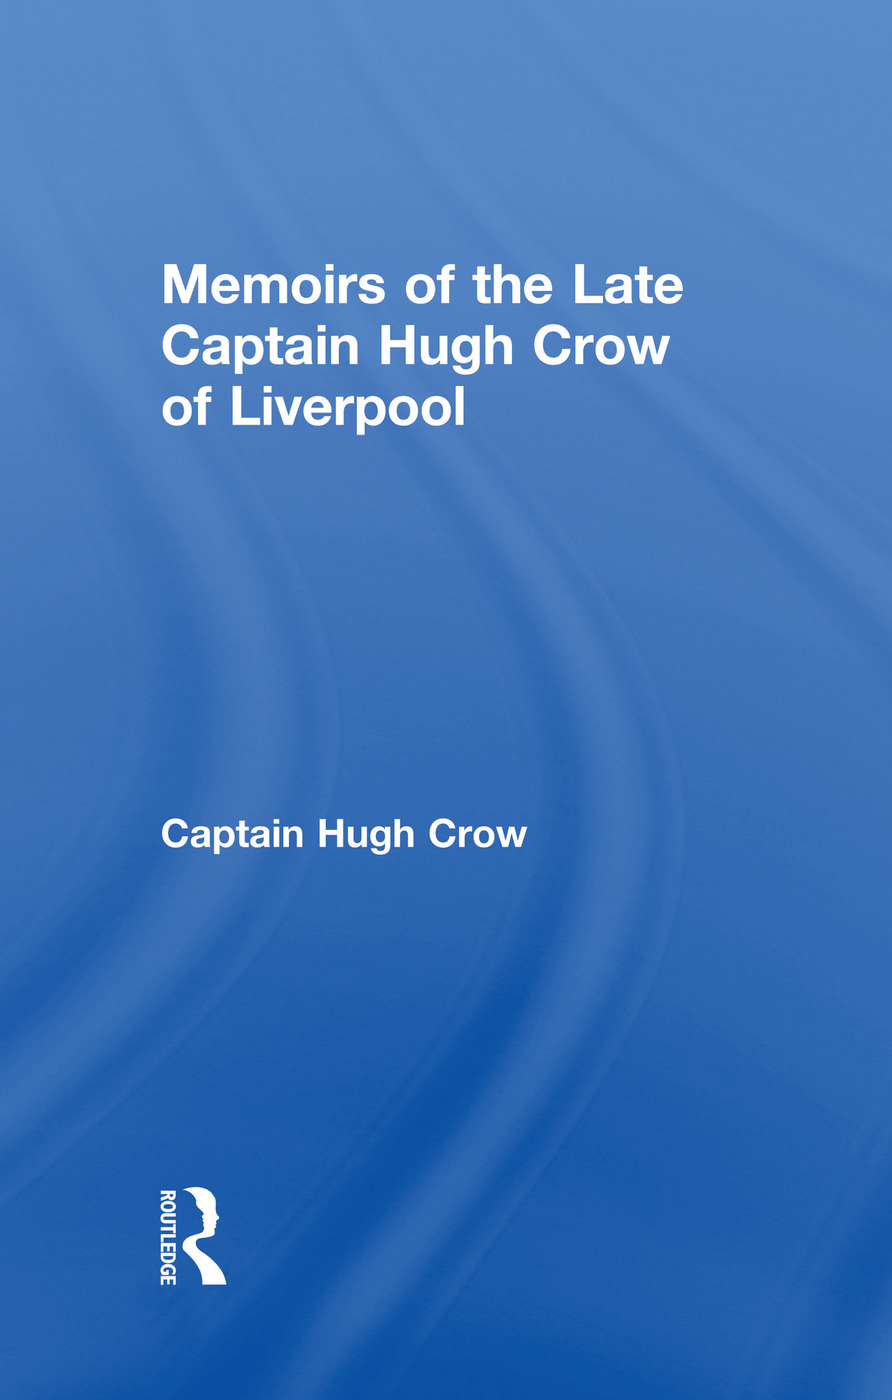 Memoirs of the Late Captain Hugh Crow of Liverpool